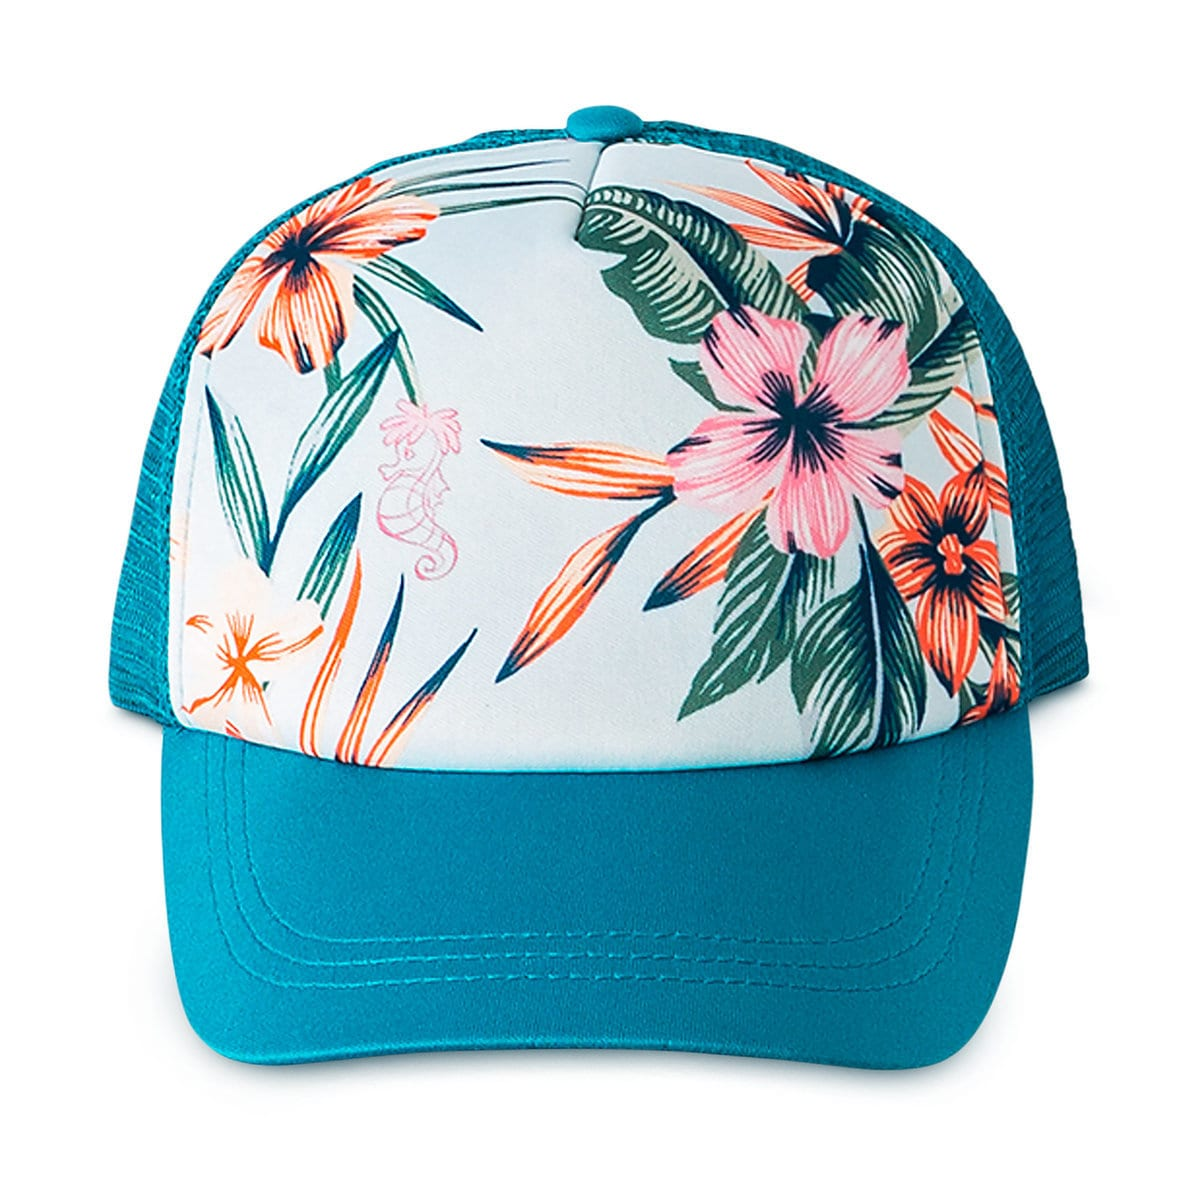 f1c73d6171369 Product Image of The Little Mermaid Trucker Hat for Girls by ROXY Girl   1